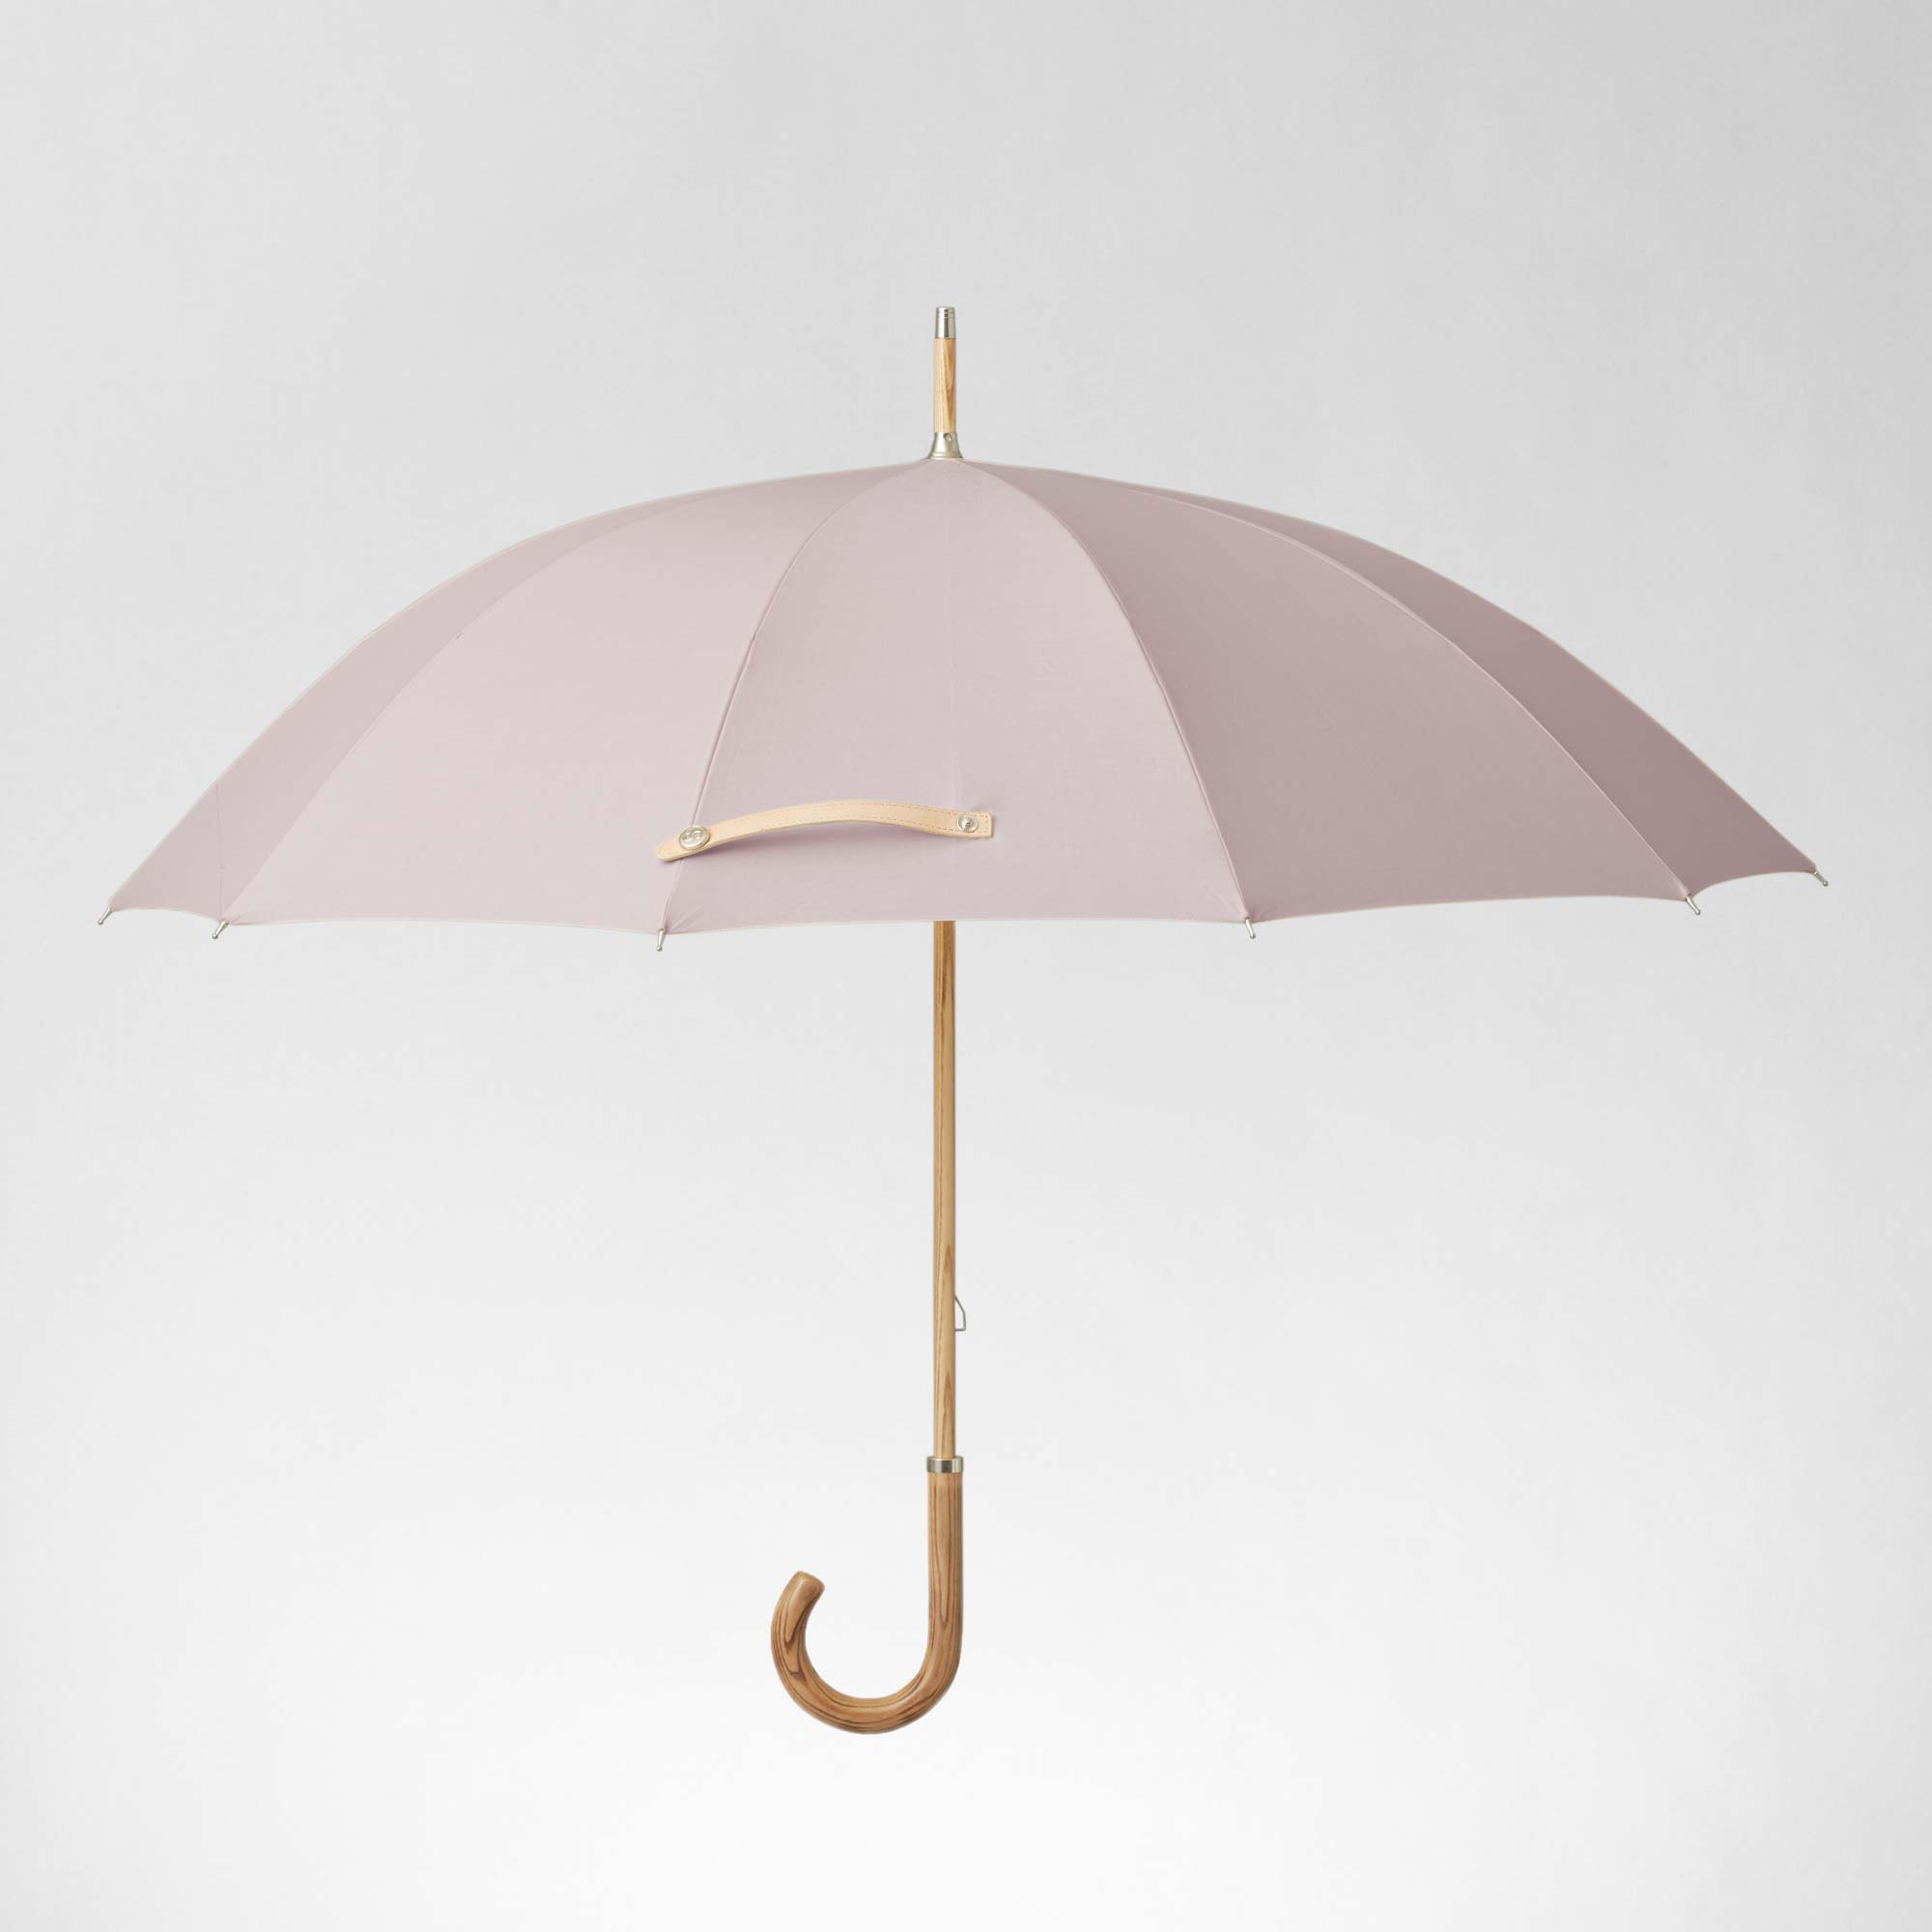 A high quality classic rose umbrella